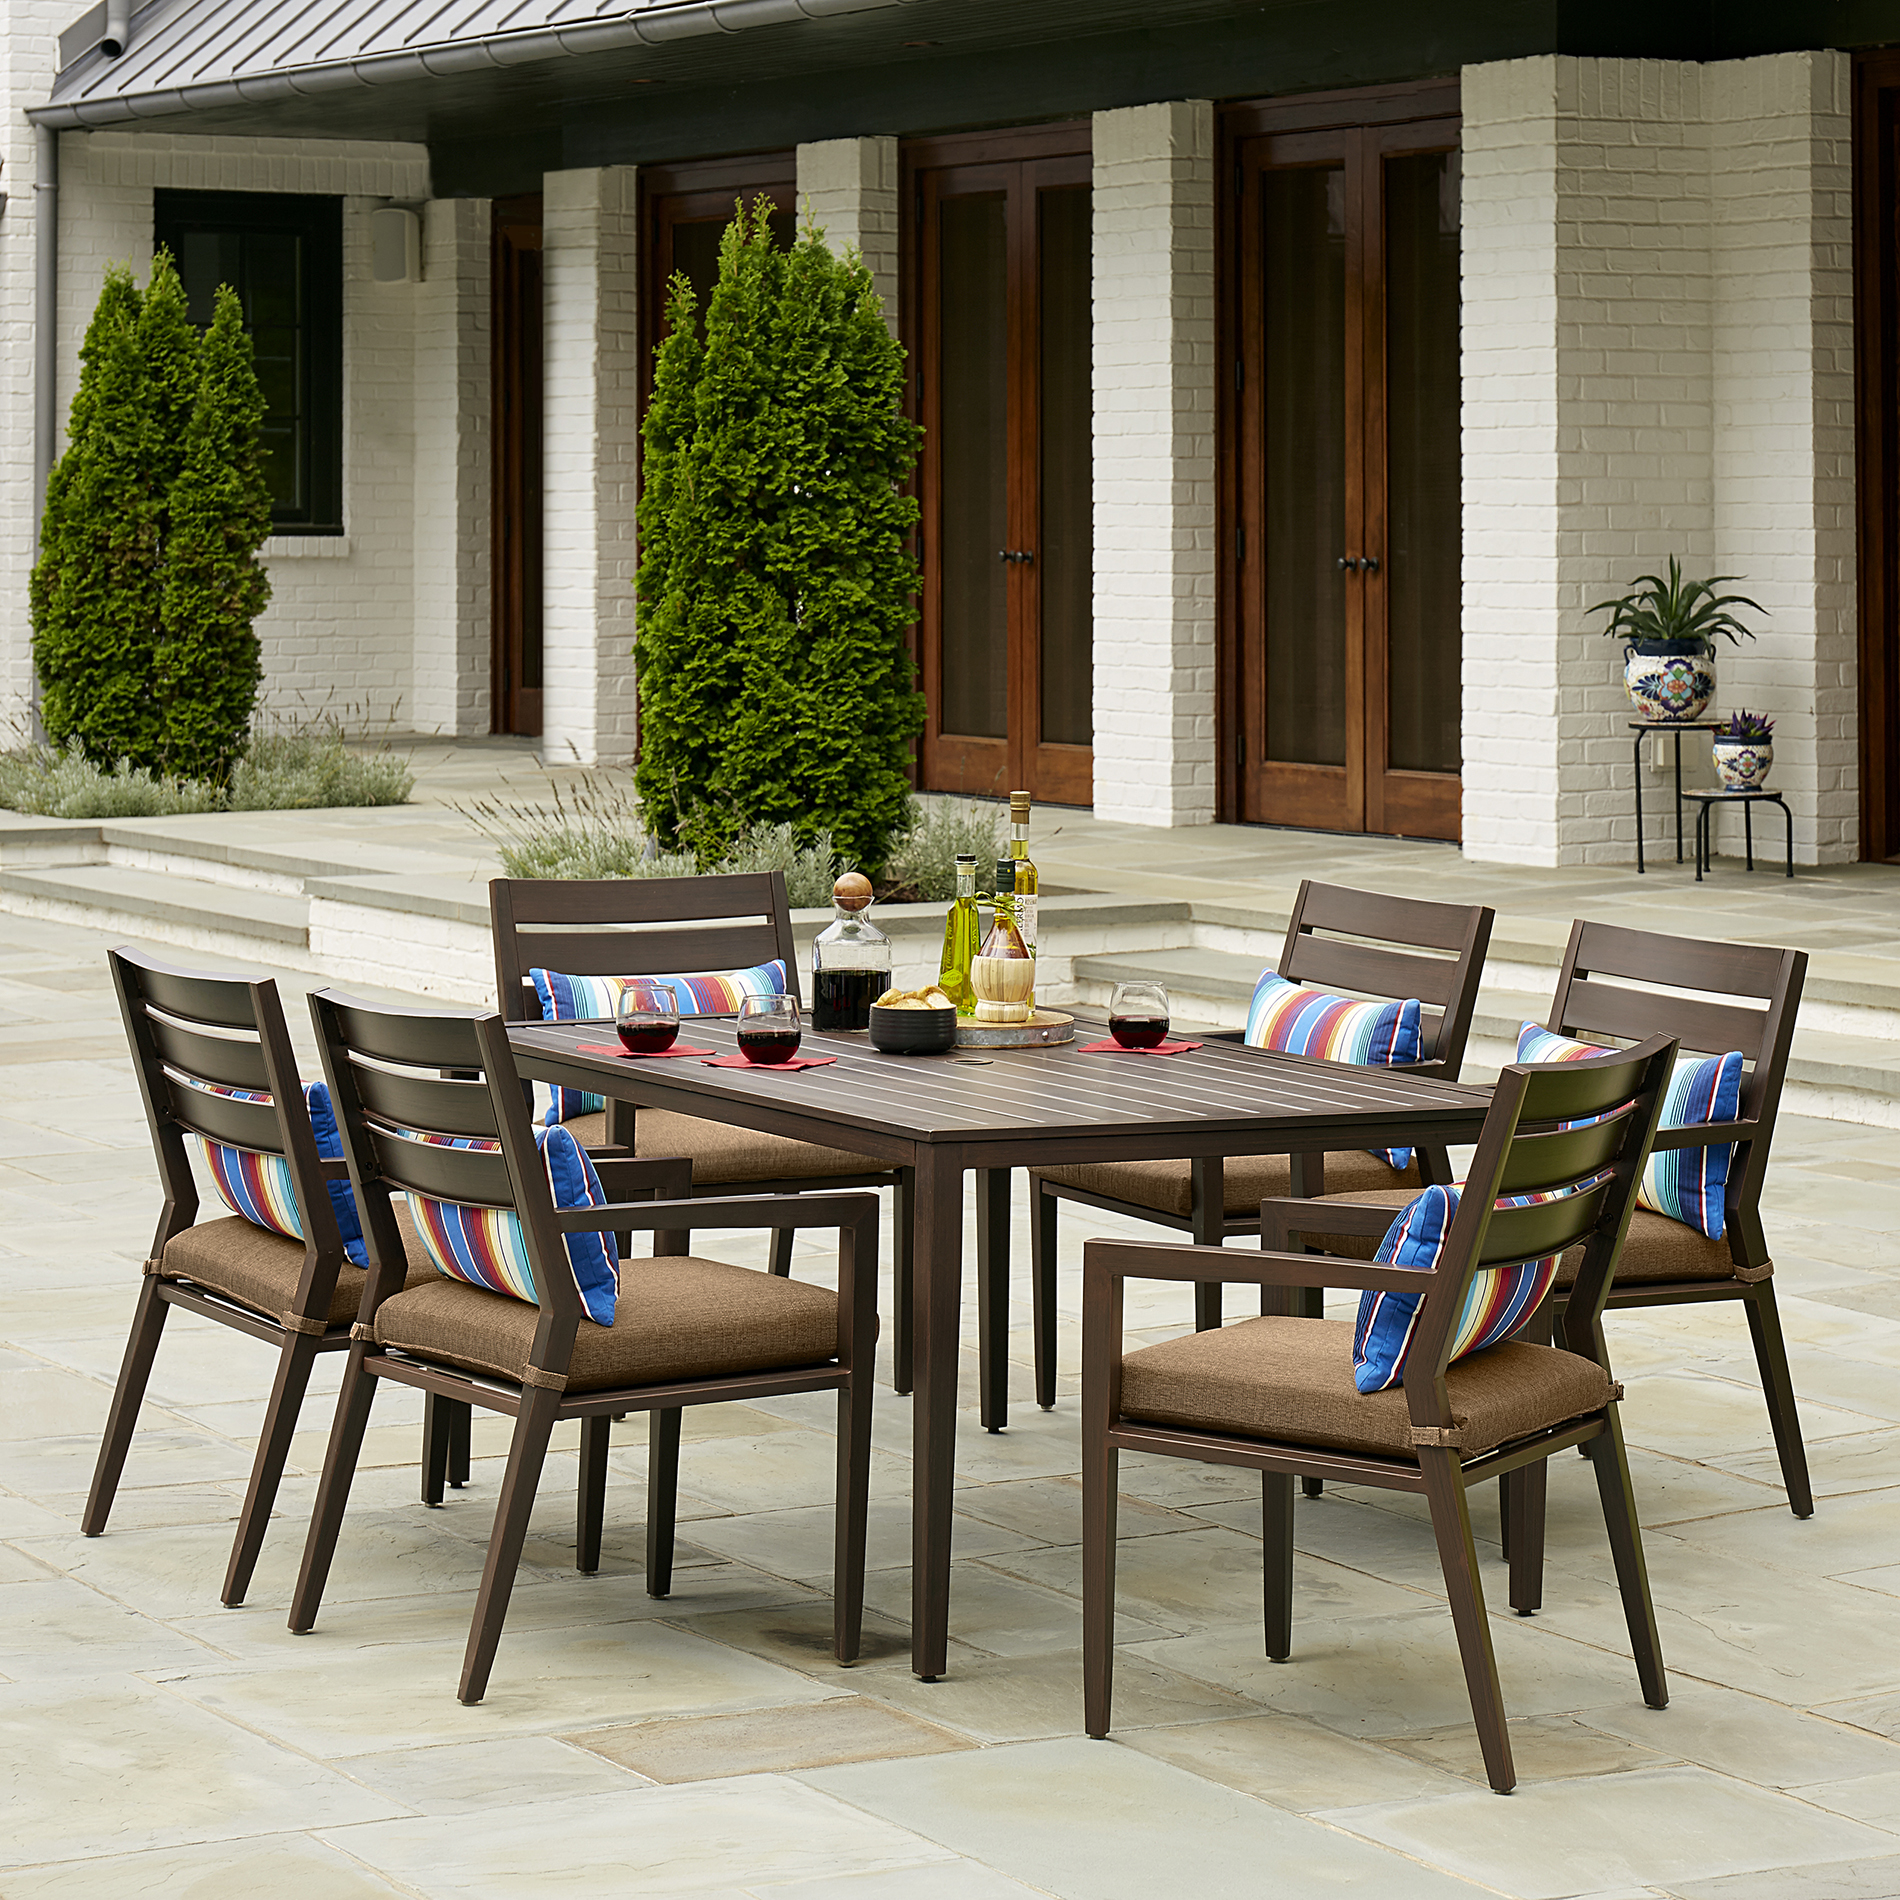 sears patio furniture dining sets Sutton Rowe Willsonville 7 Piece Dining Set *Limited